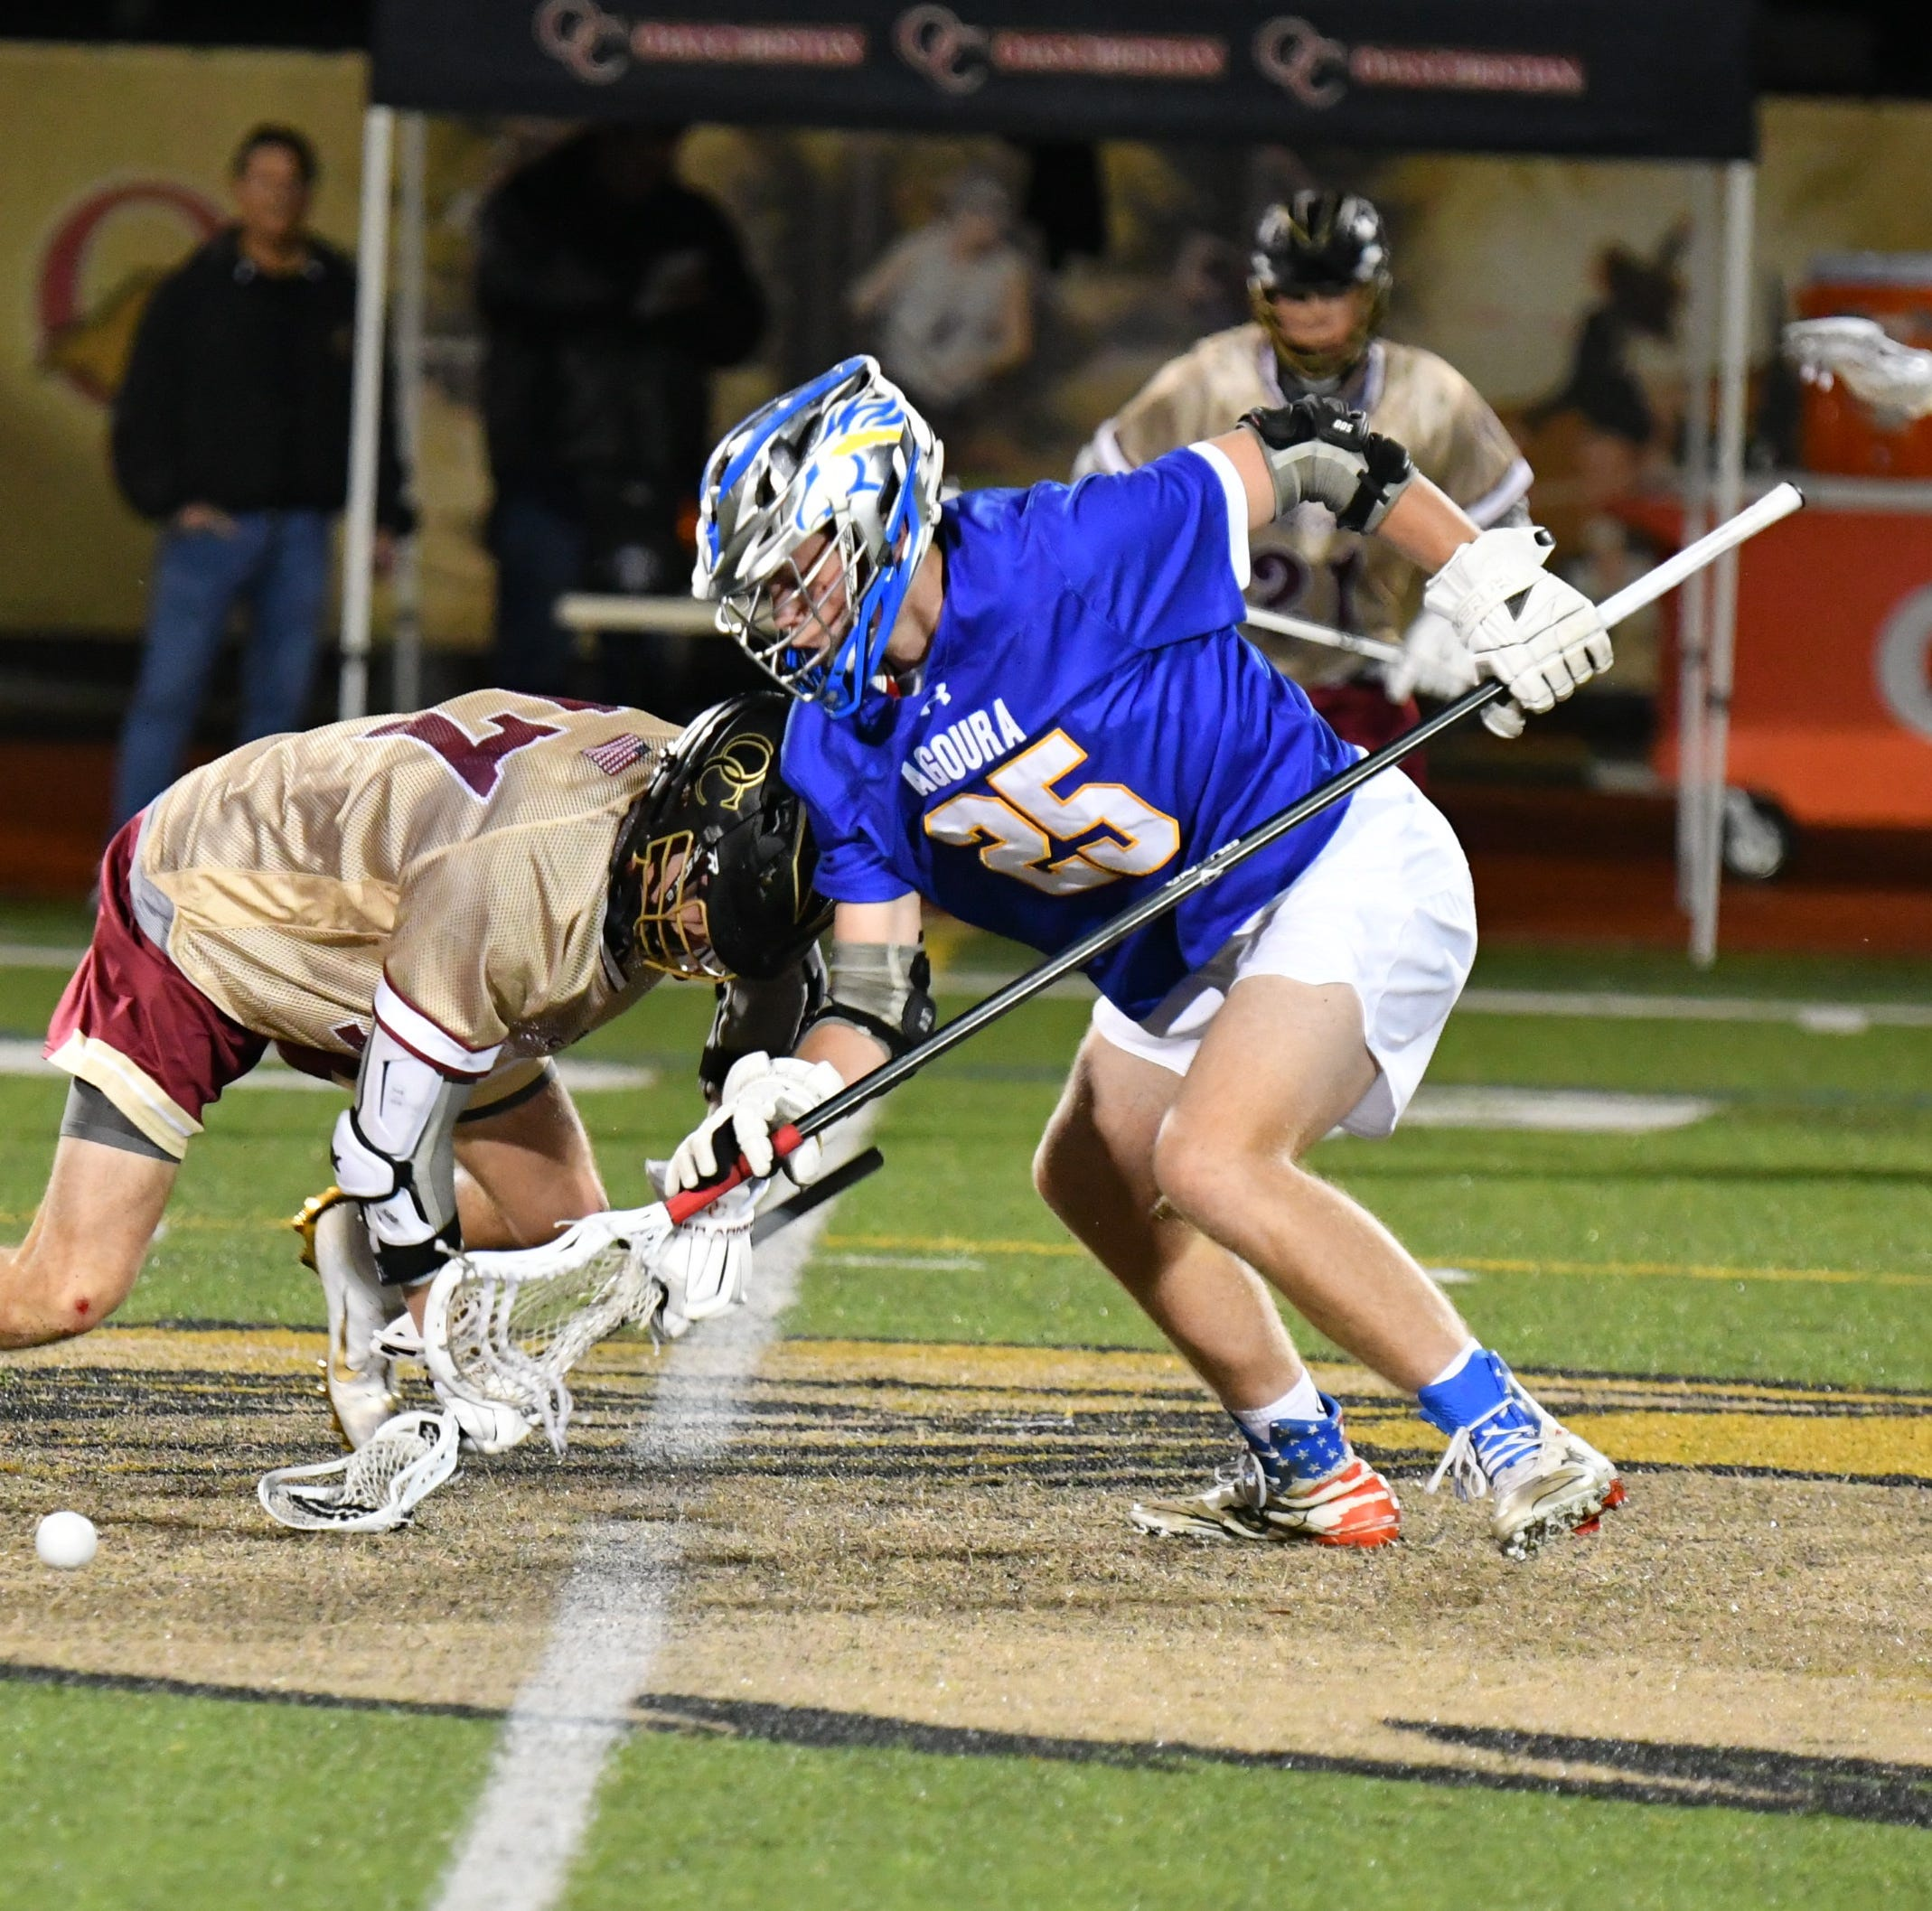 Launch of new league alters balance of local boys lacrosse power